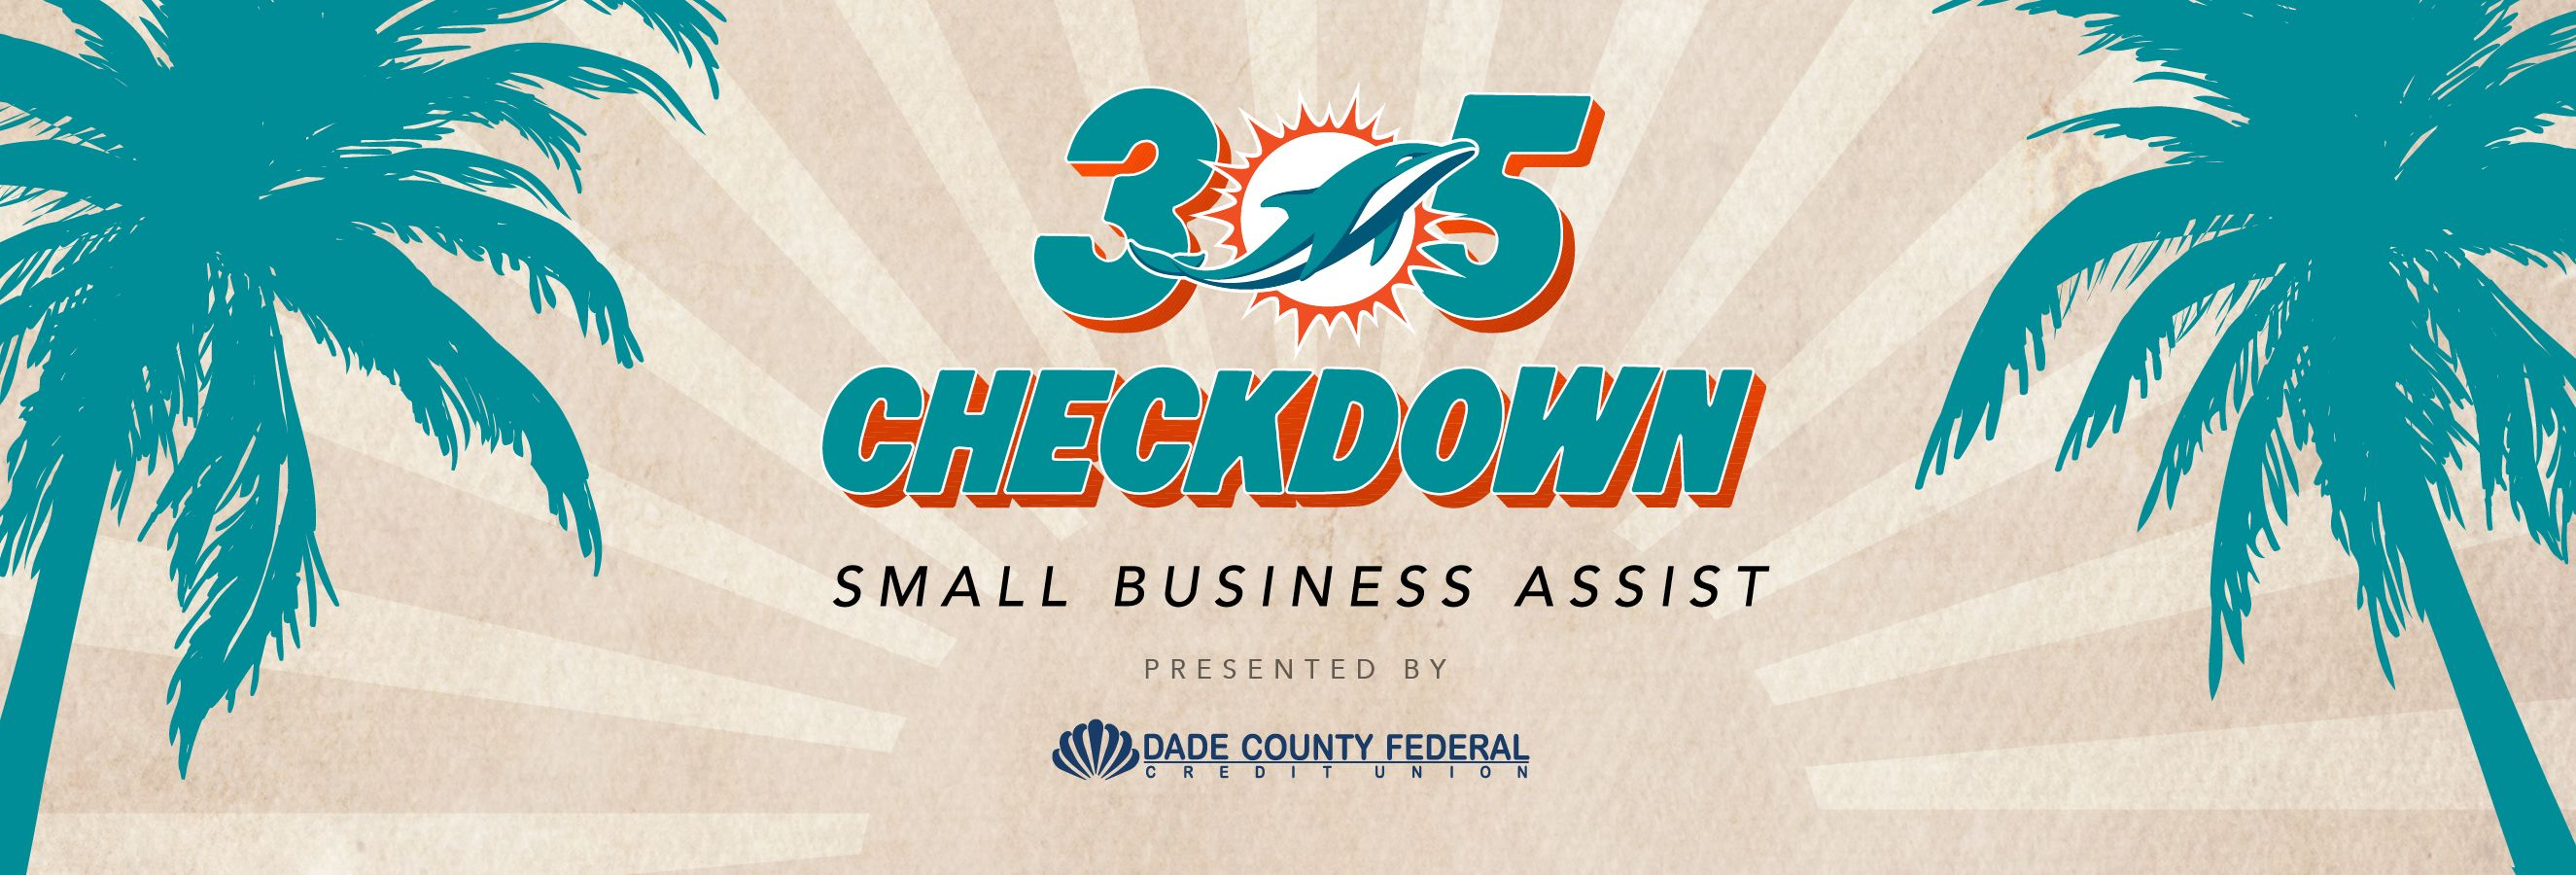 Graphic: Header - 305 Checkdown Small Business Assist presented by Dade County Federal Credit Union